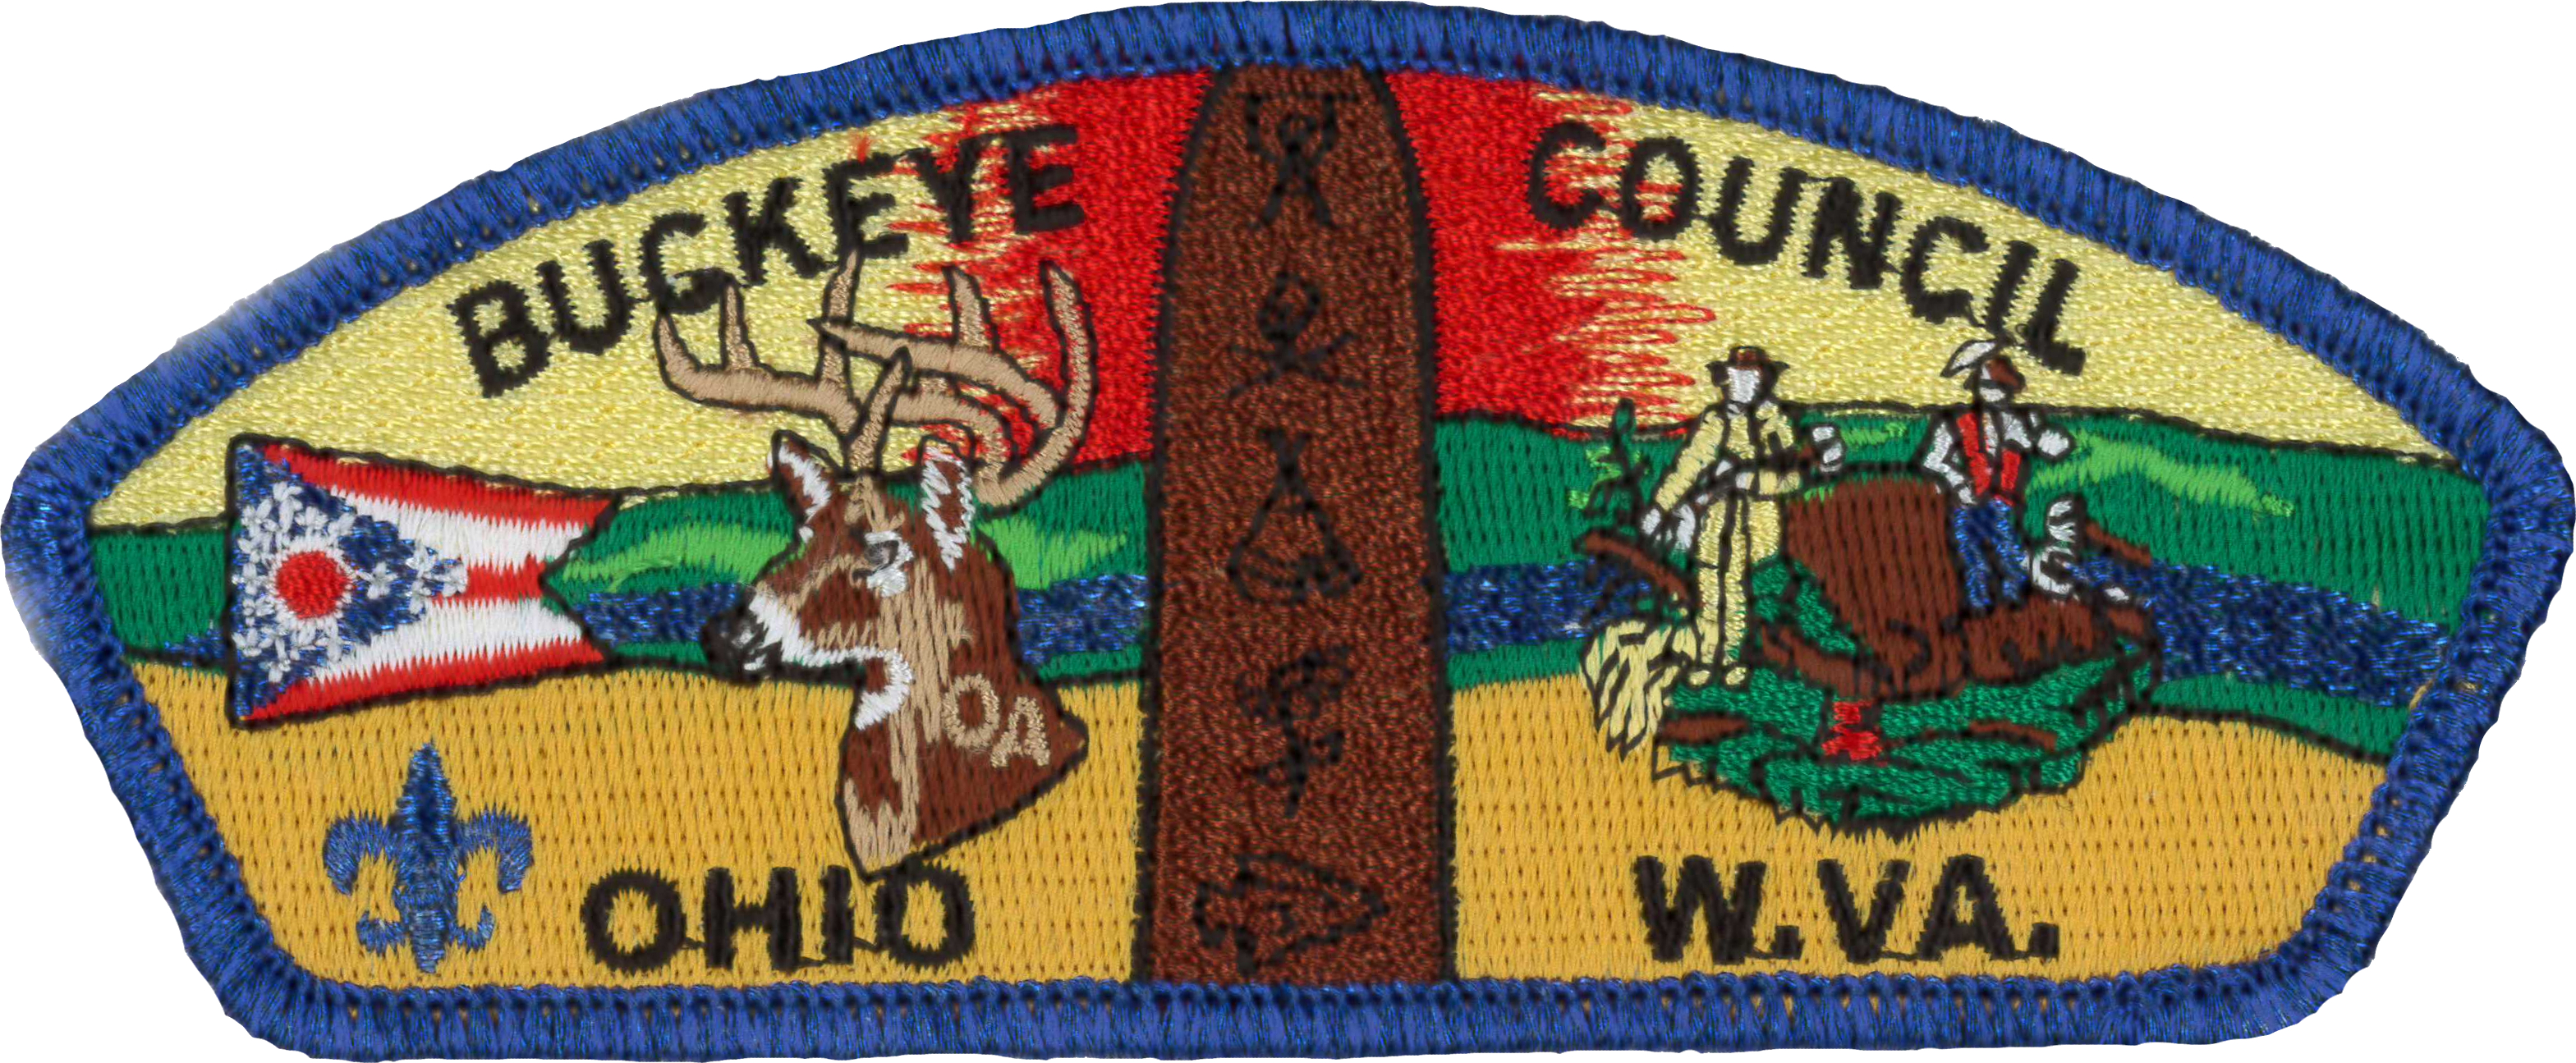 SCOUT BSA 1970 ORANGE EMPIRE COUNCIL CA CAMPOREE PATCH MERGED BADGE SCOUTING !!!